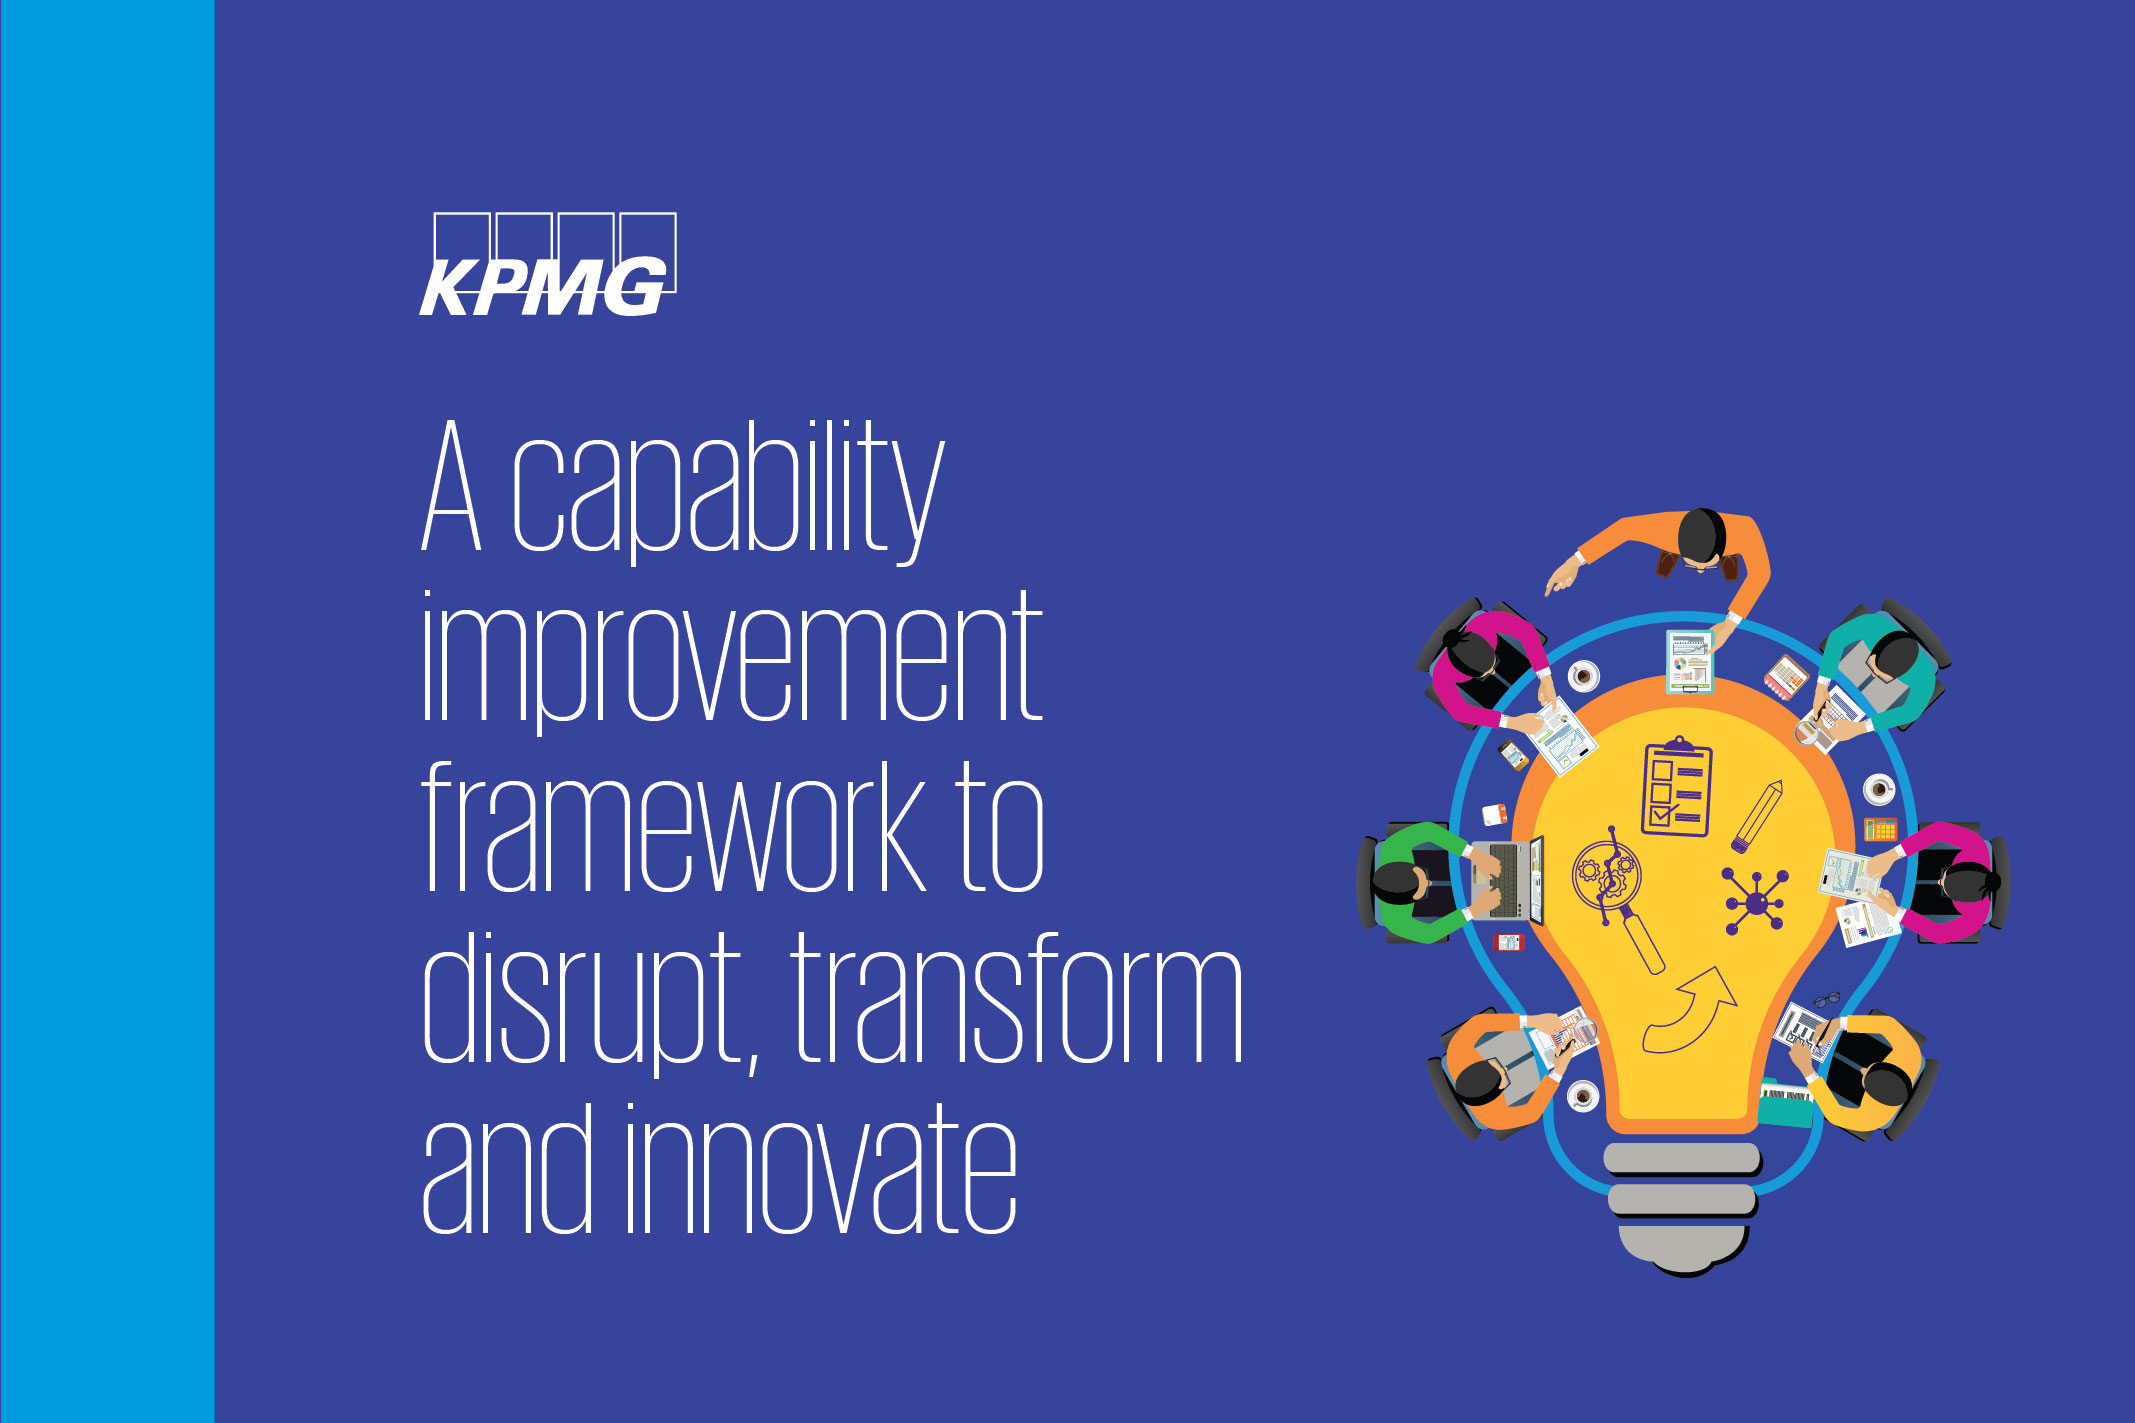 cmmi-v2-development-capability-improvement-framework-disrupt